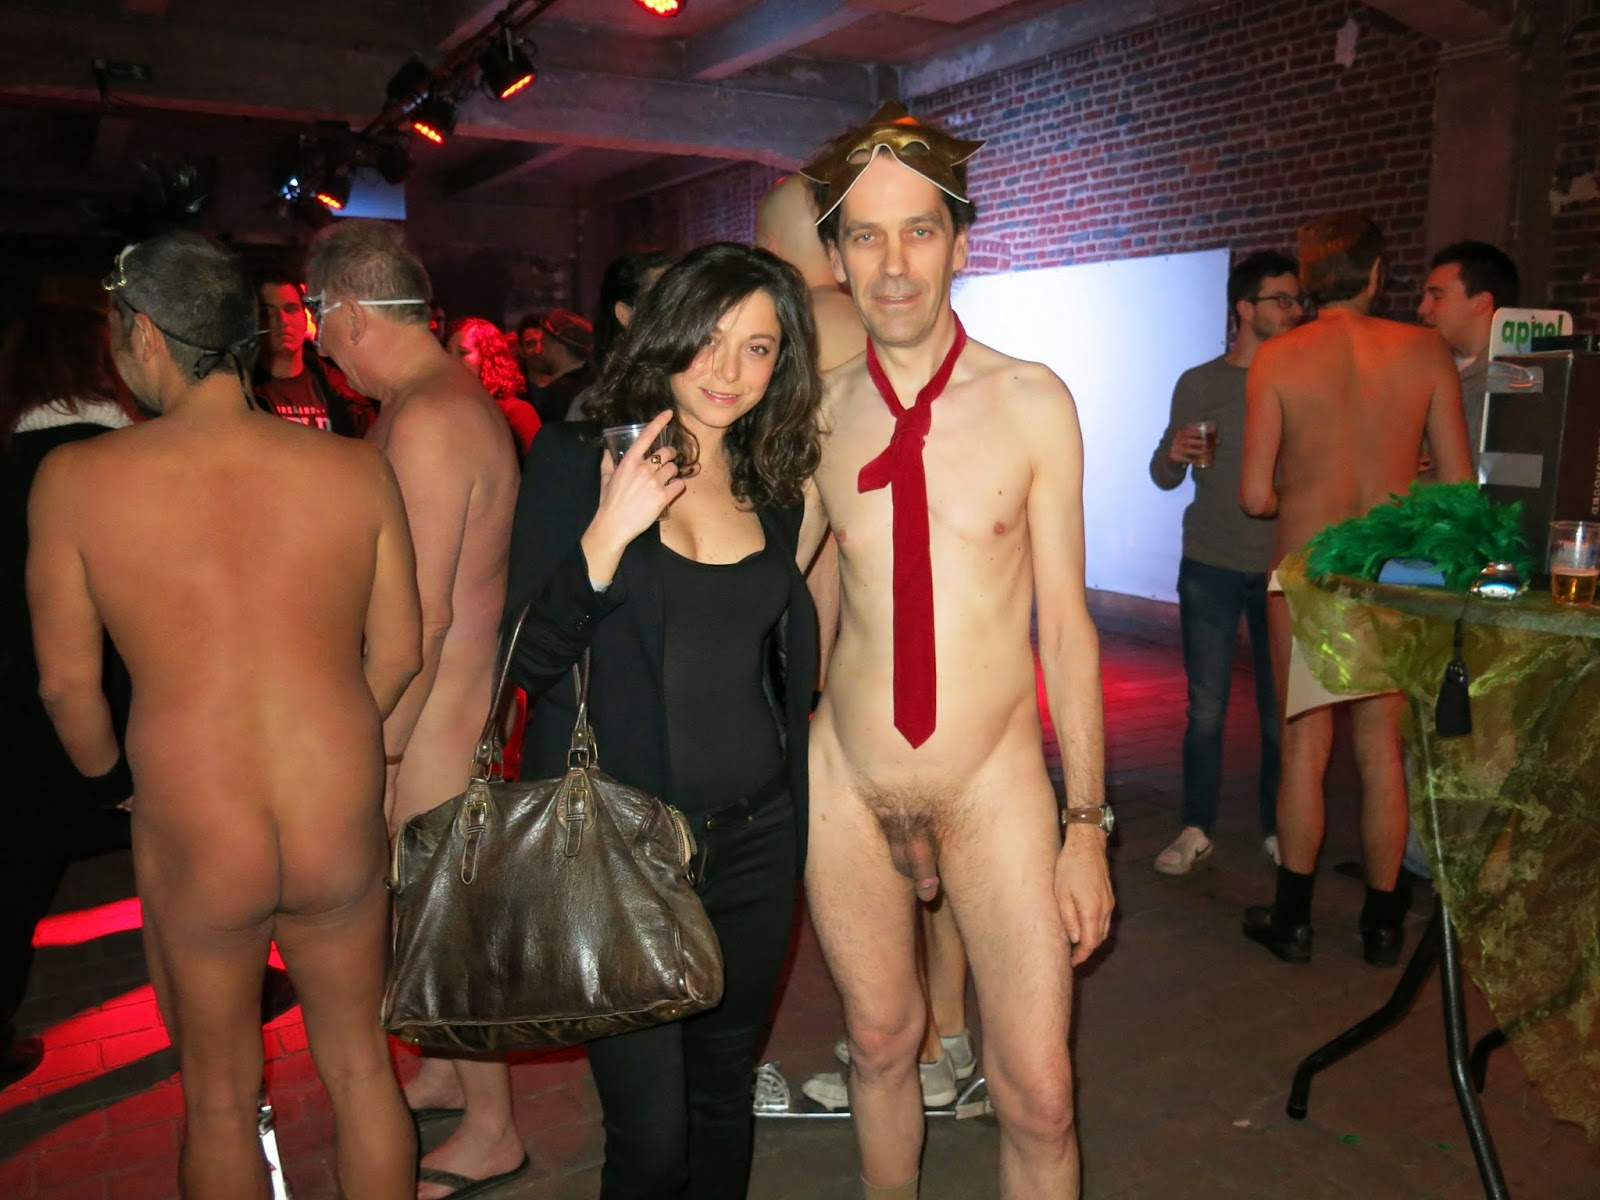 Embarrassed naked female clothed male